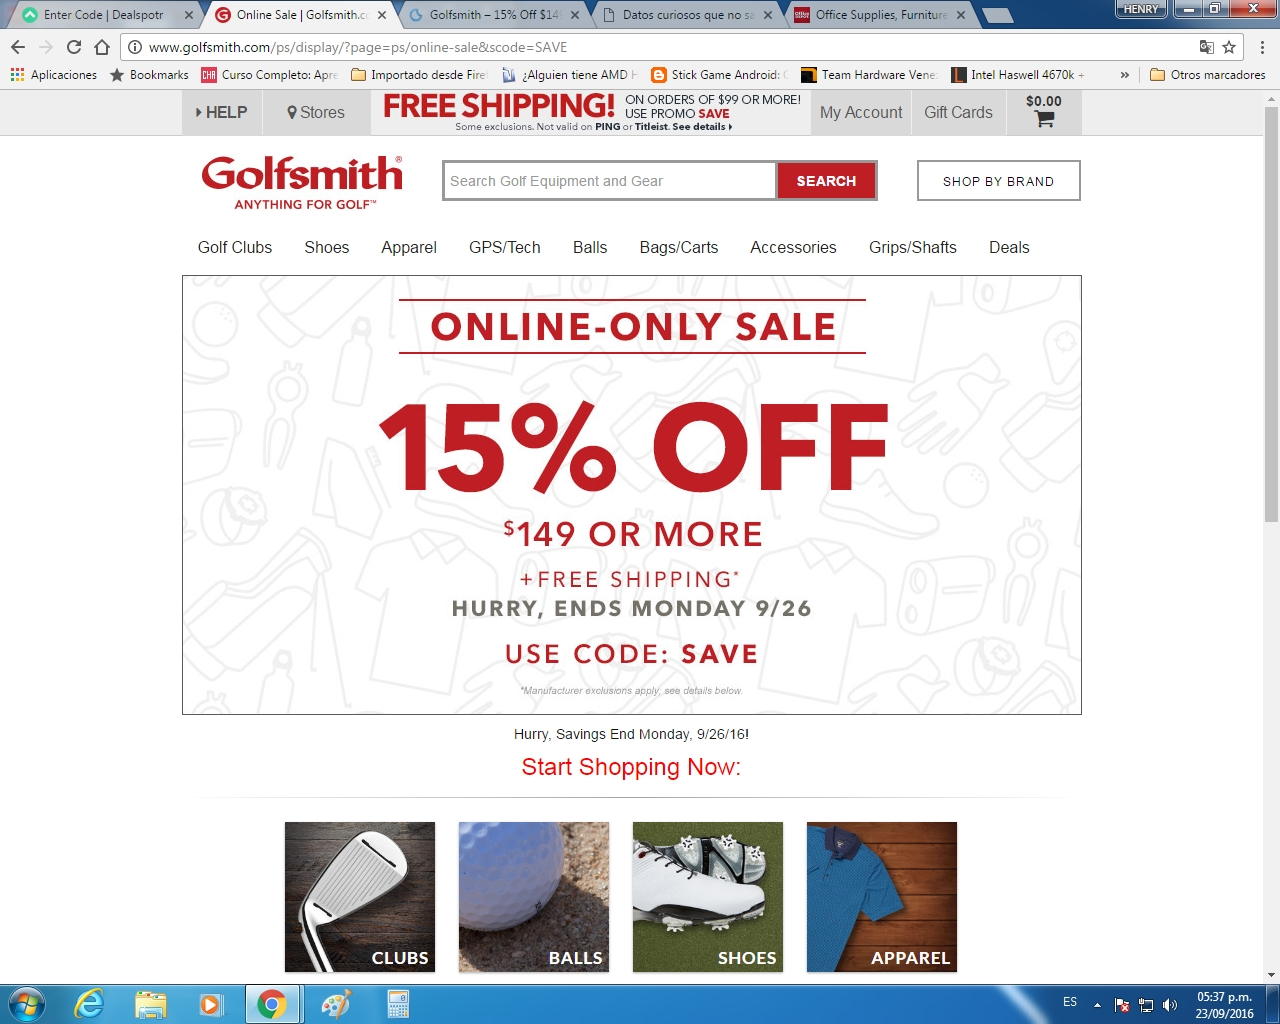 photograph about Golfsmith Printable Coupons named Golfsmith leist discount coupons / Homeshop18 low cost discount coupons may perhaps